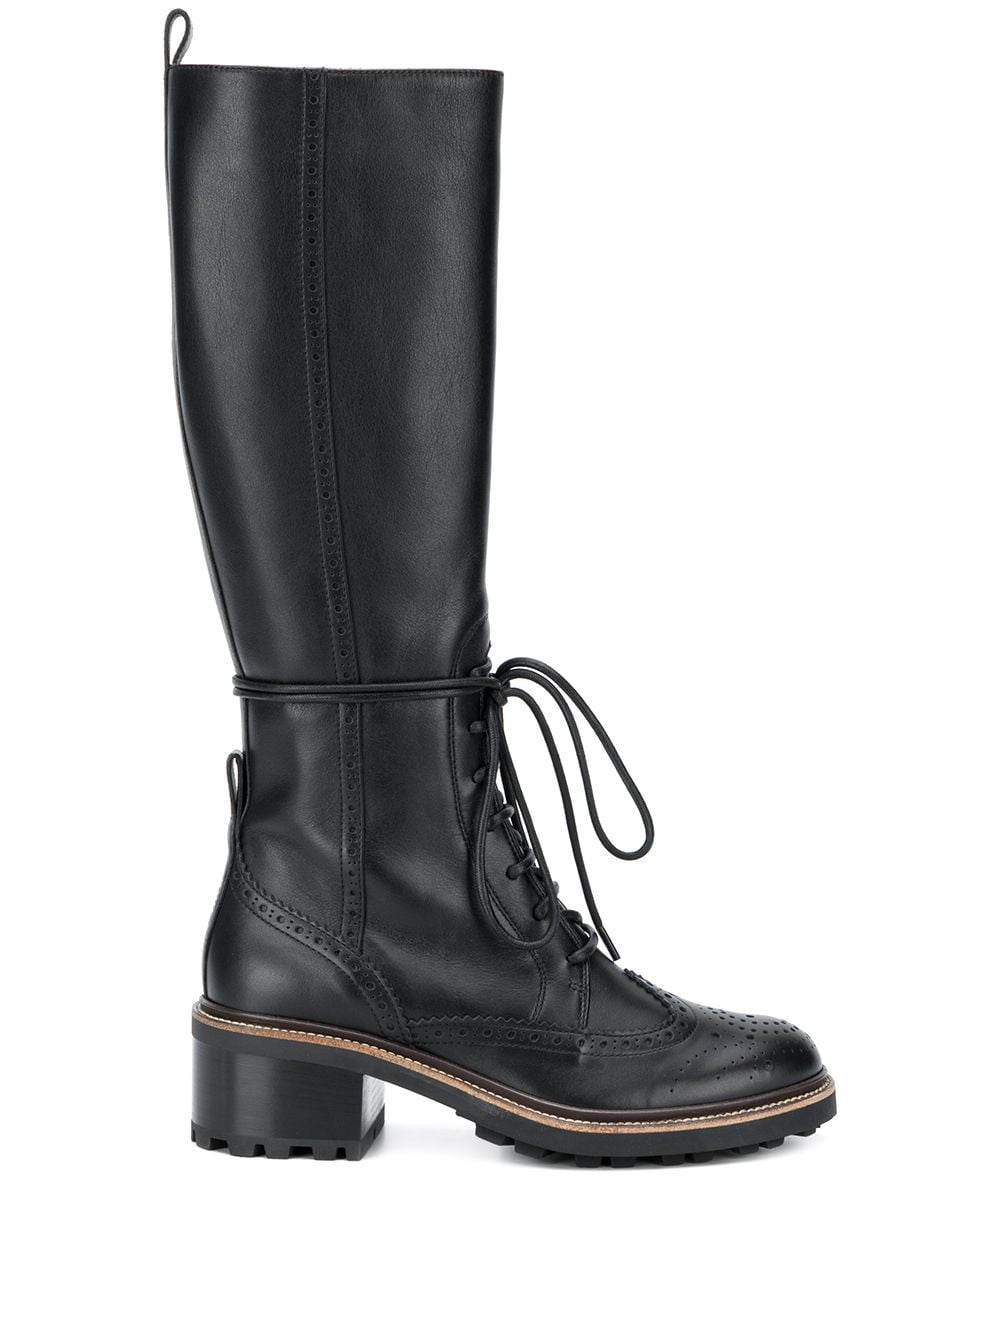 Franne Leather Boots